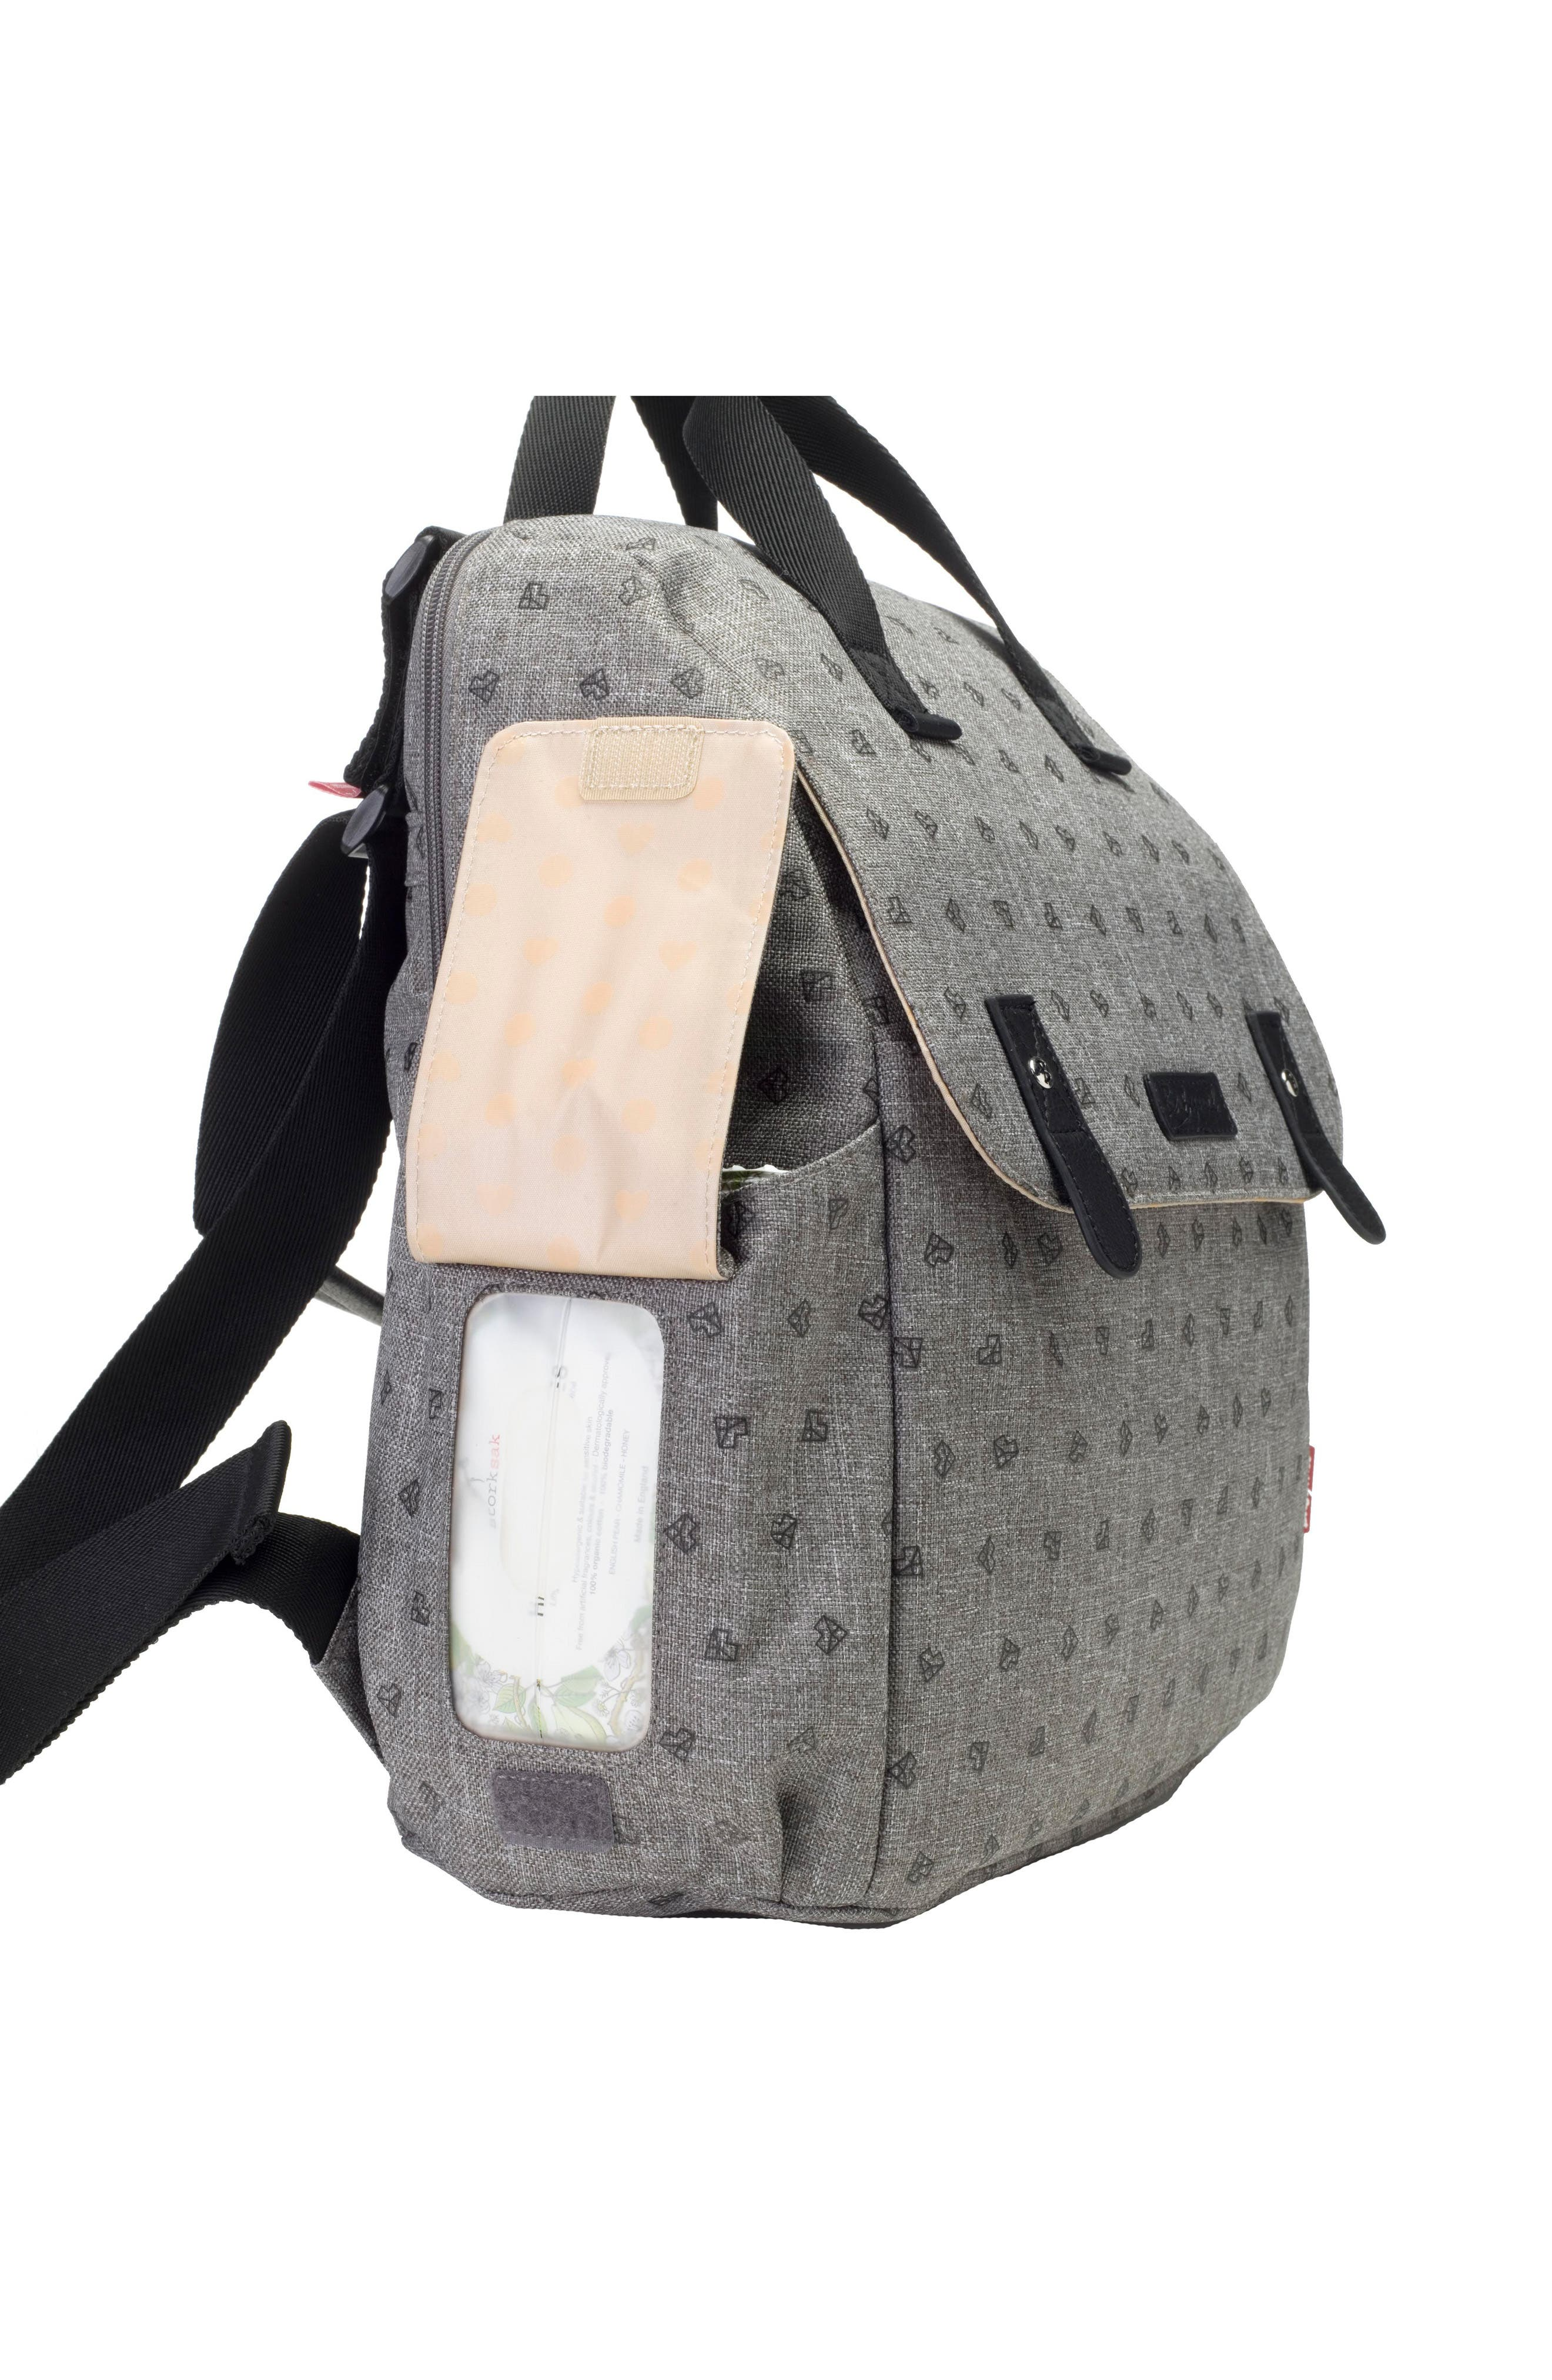 Robyn Convertible Diaper Backpack,                             Alternate thumbnail 9, color,                             GREY ORIGAMI HEART